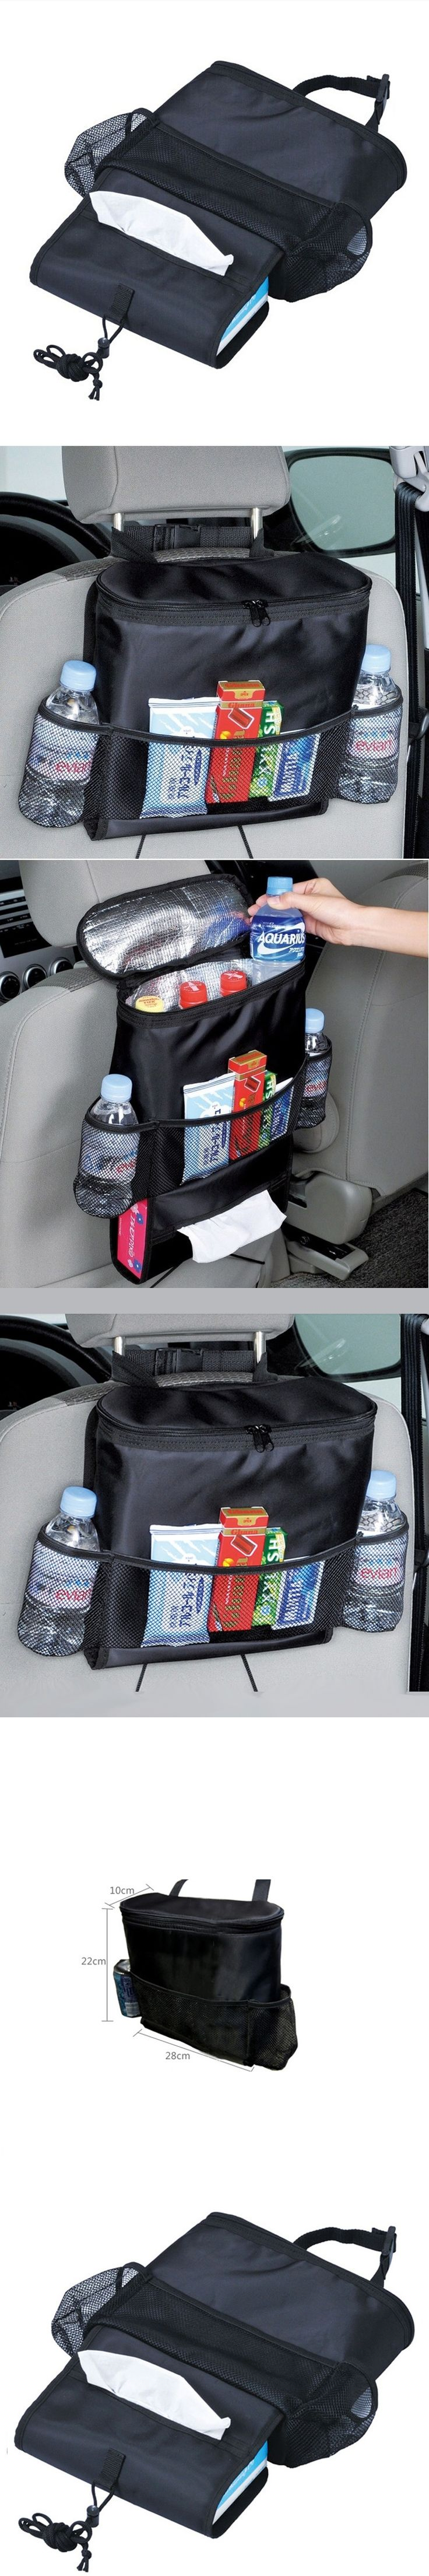 Selling ! New Style Warm Rear Seat Code Holder Car Organizer Bag Baby Kick Mat Tissue Box Cover Travel Bag hanger deck Barro